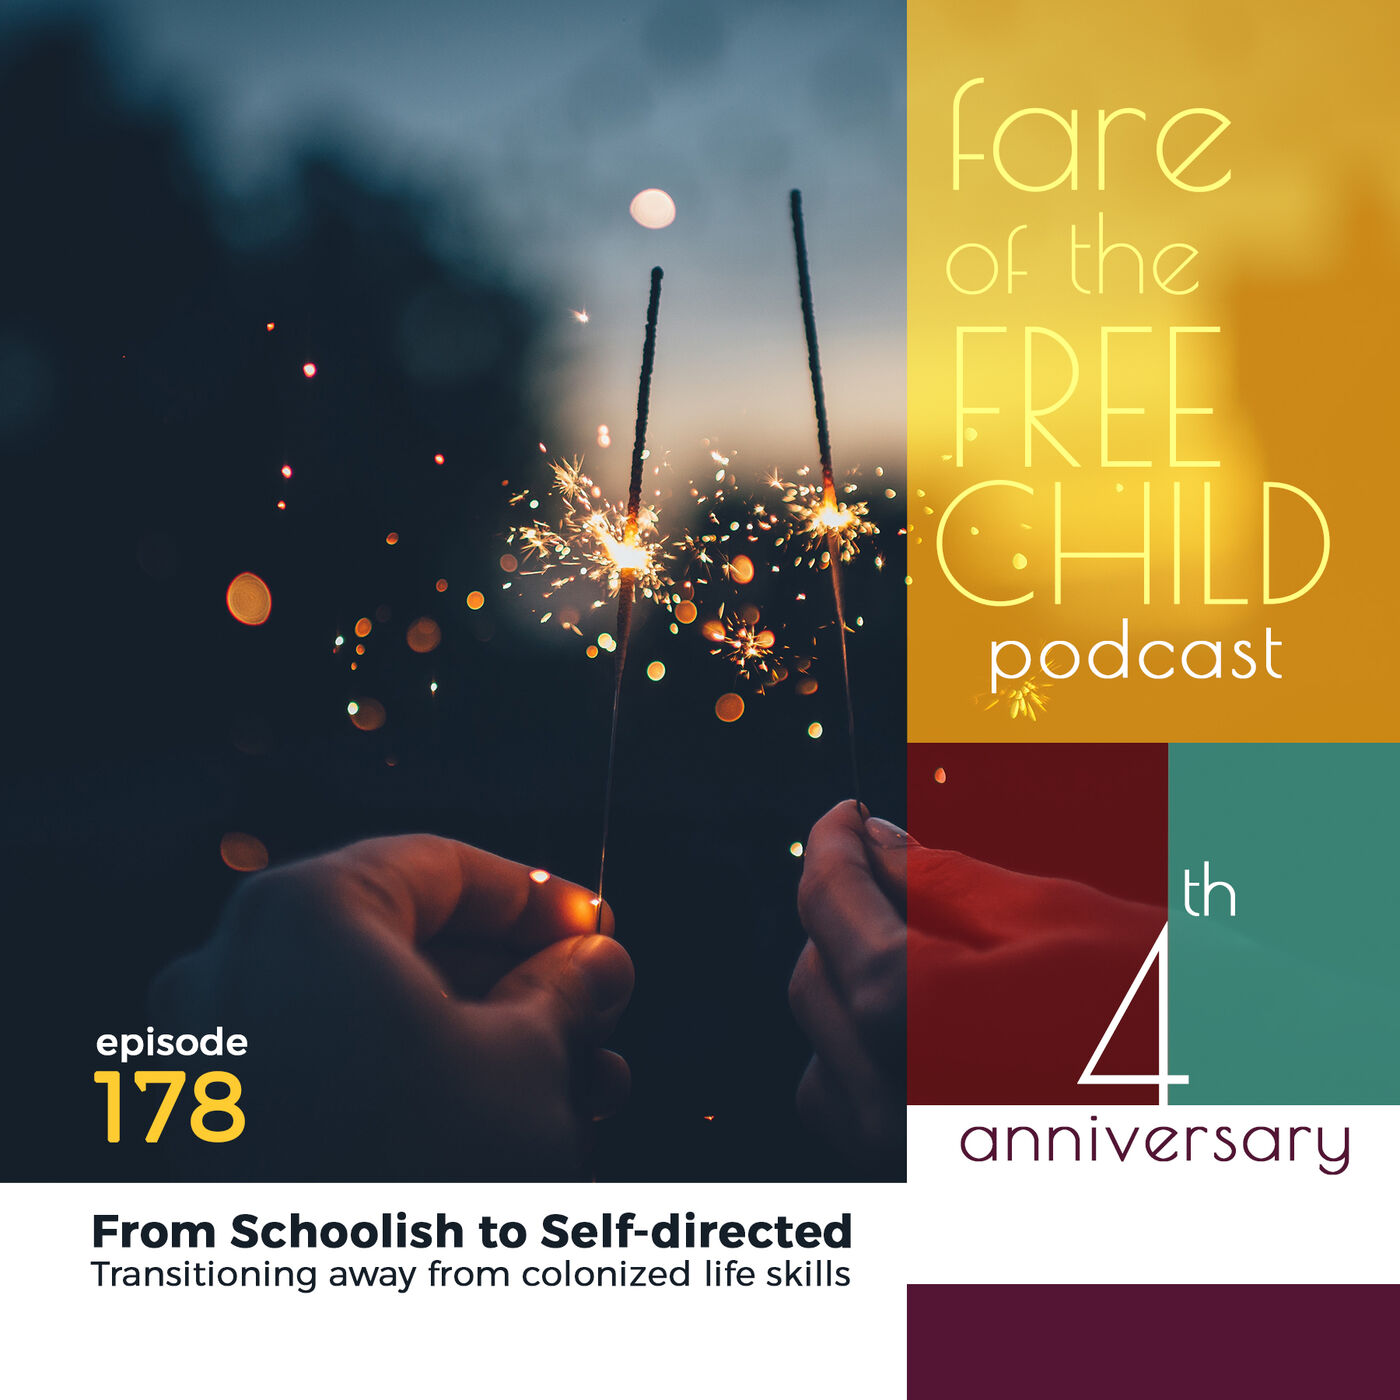 Ep 178: From Schoolish to Self-directed. Transitioning away from colonized life skills